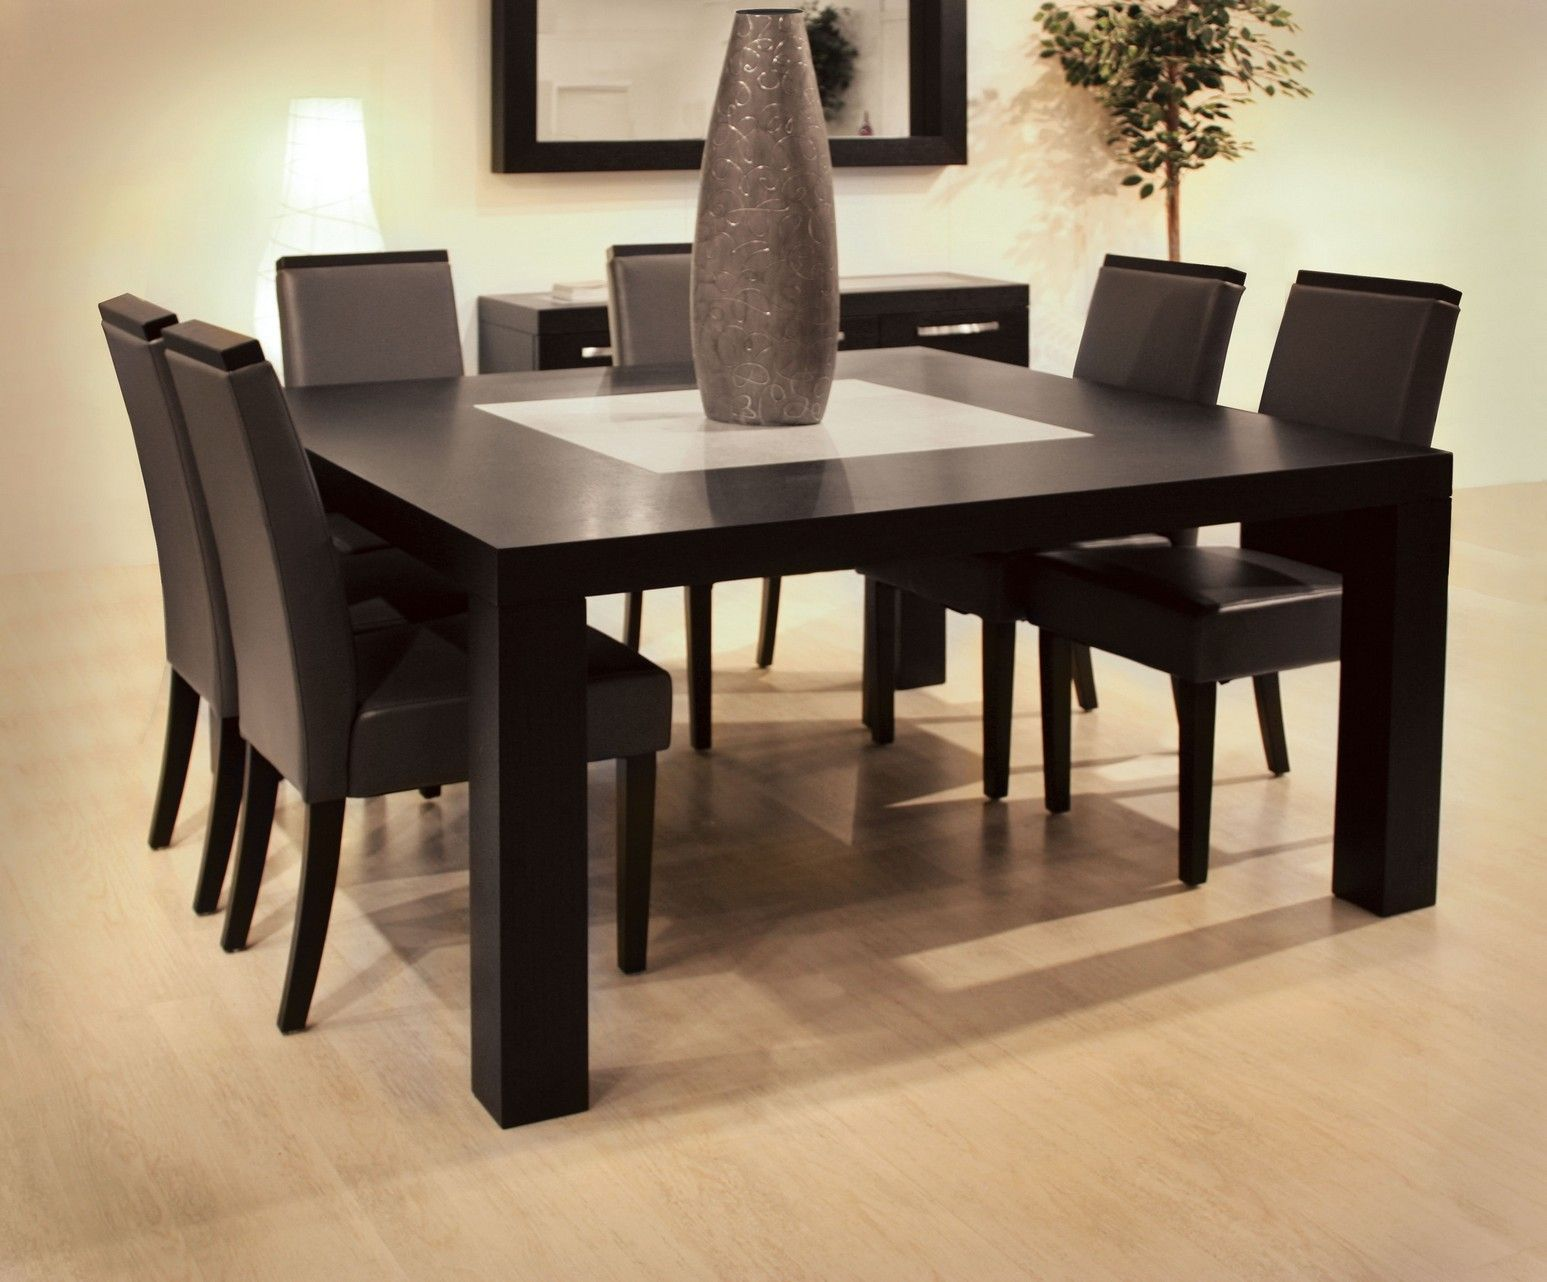 kitchen table las vegas SQUARE DINING TABLE Interior Design